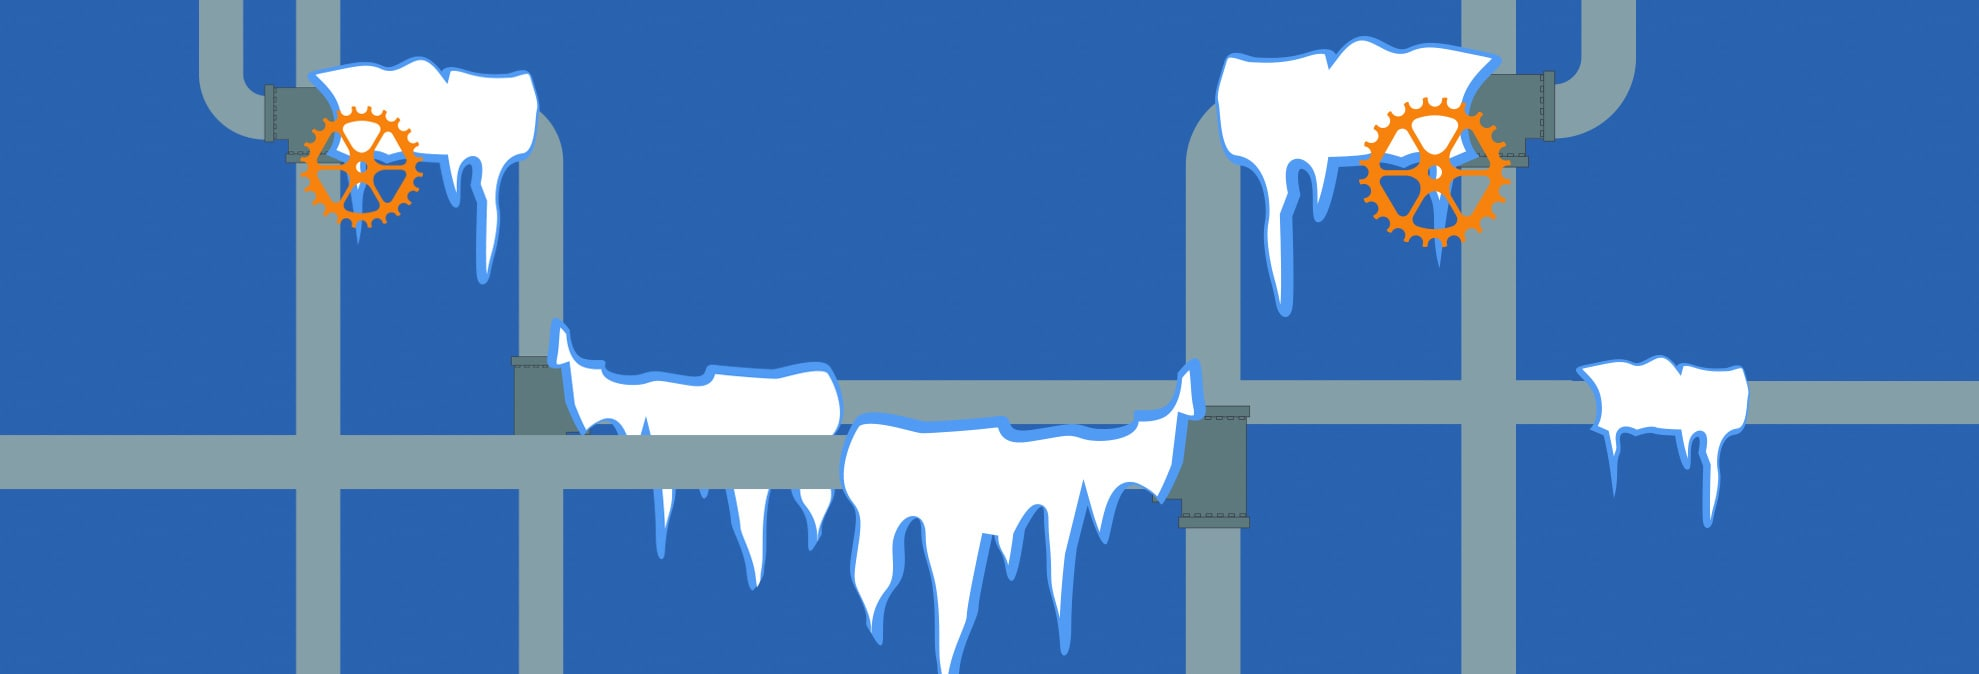 How to Prevent Your Pipes From Freezing - Consumer Reports